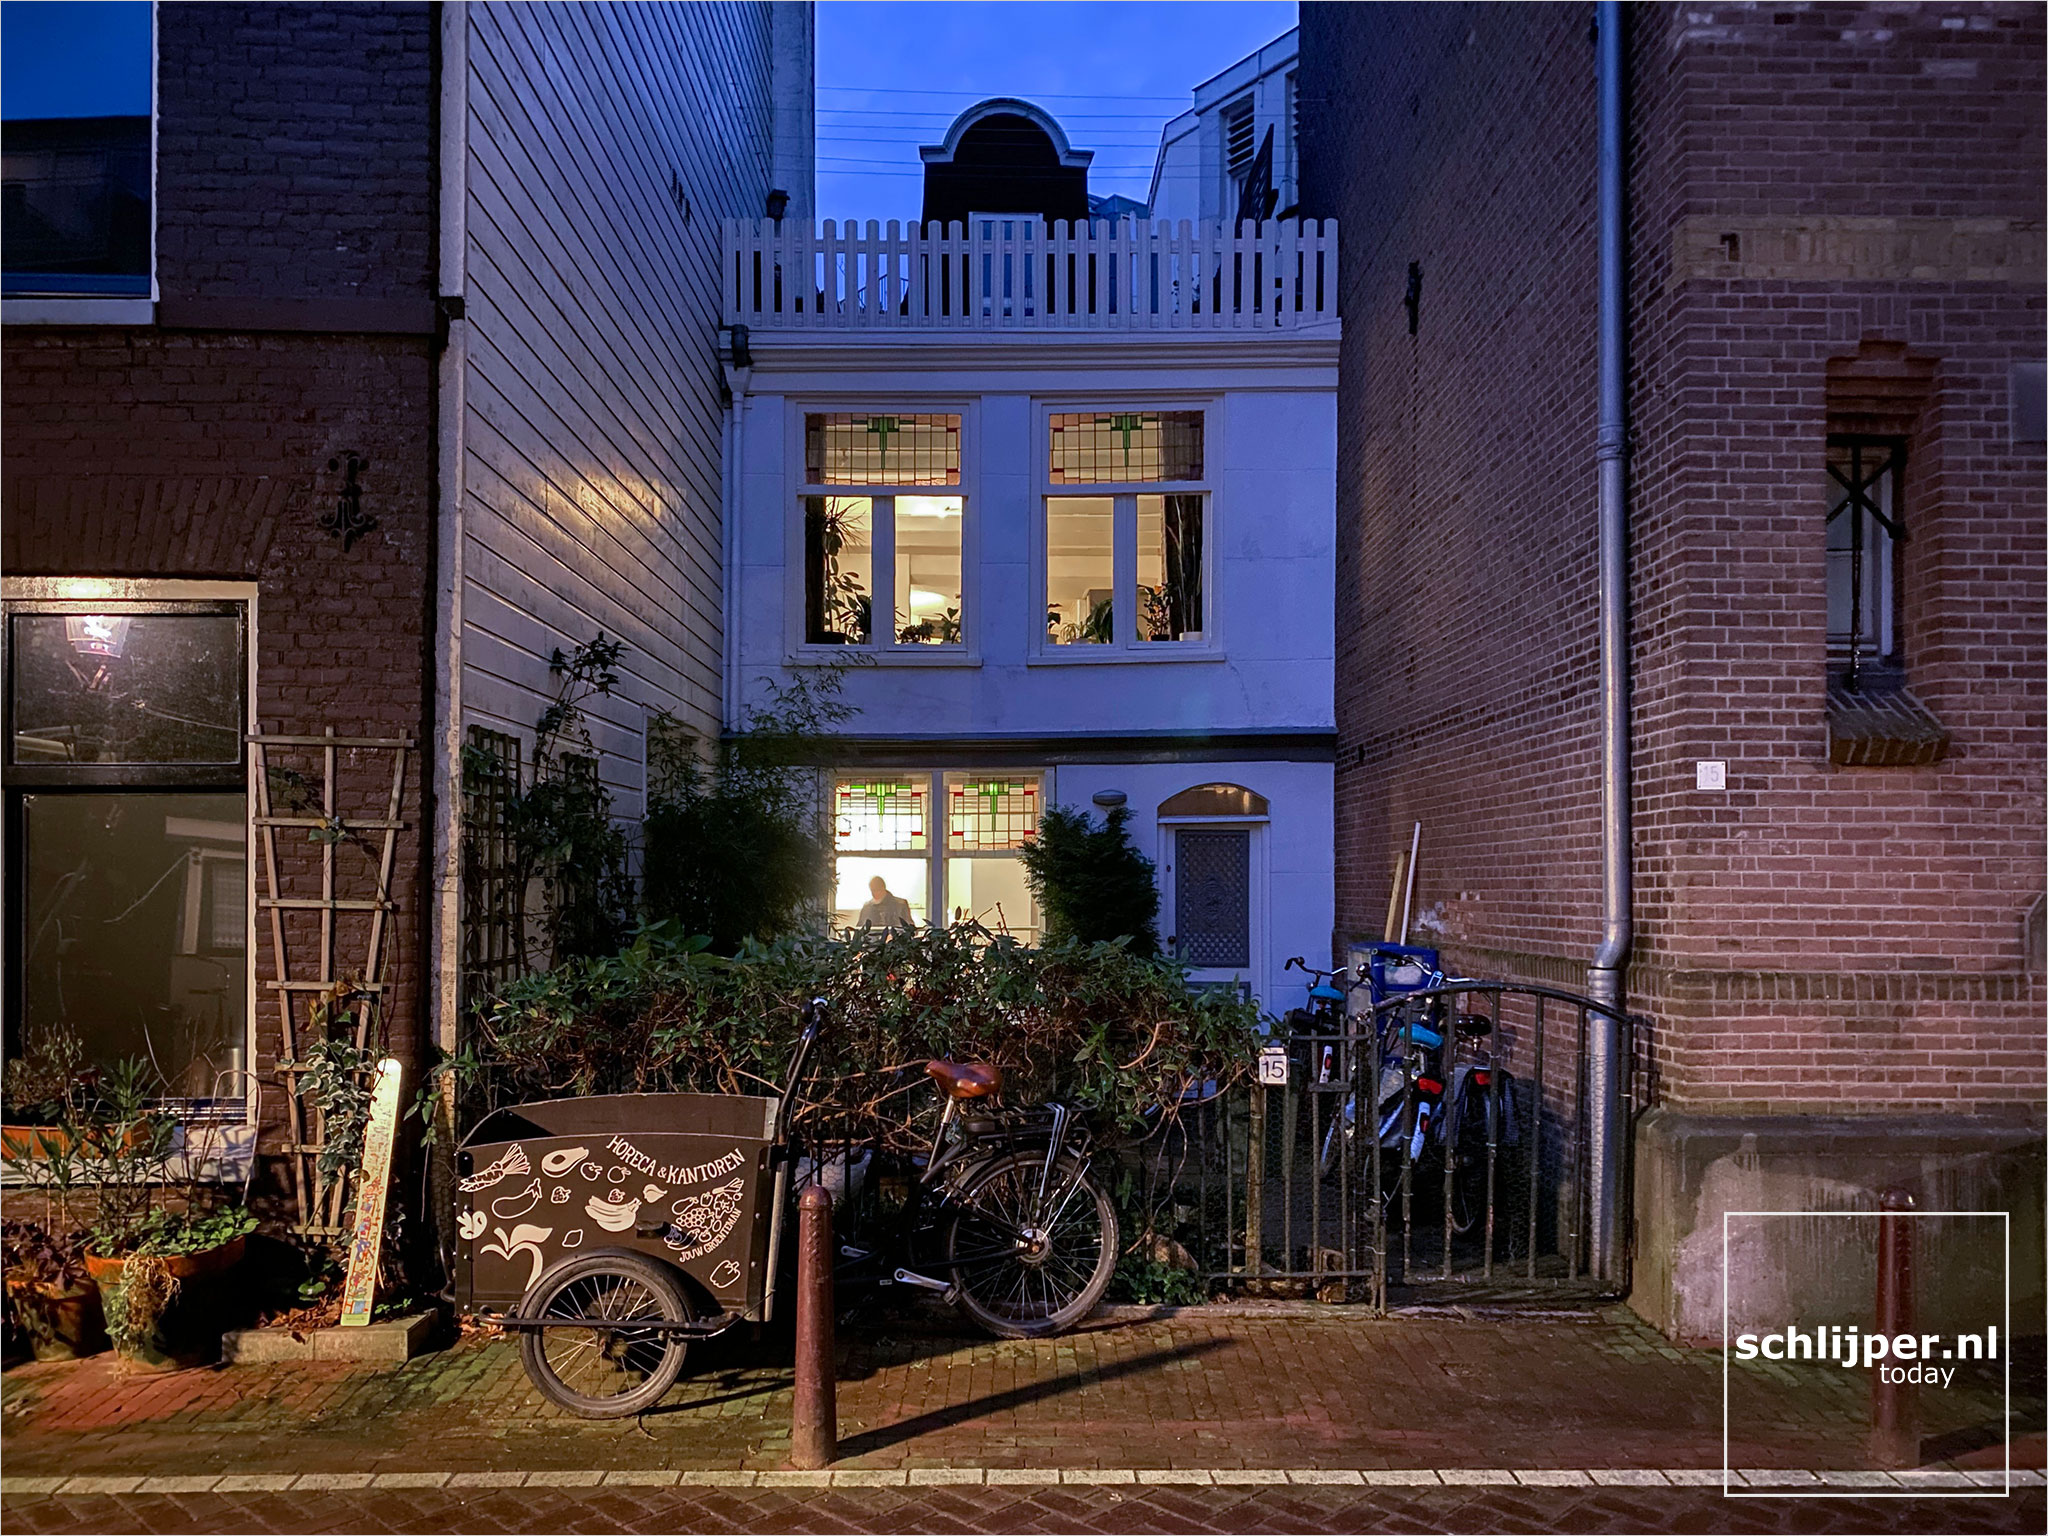 The Netherlands, Amsterdam, 13 januari 2021